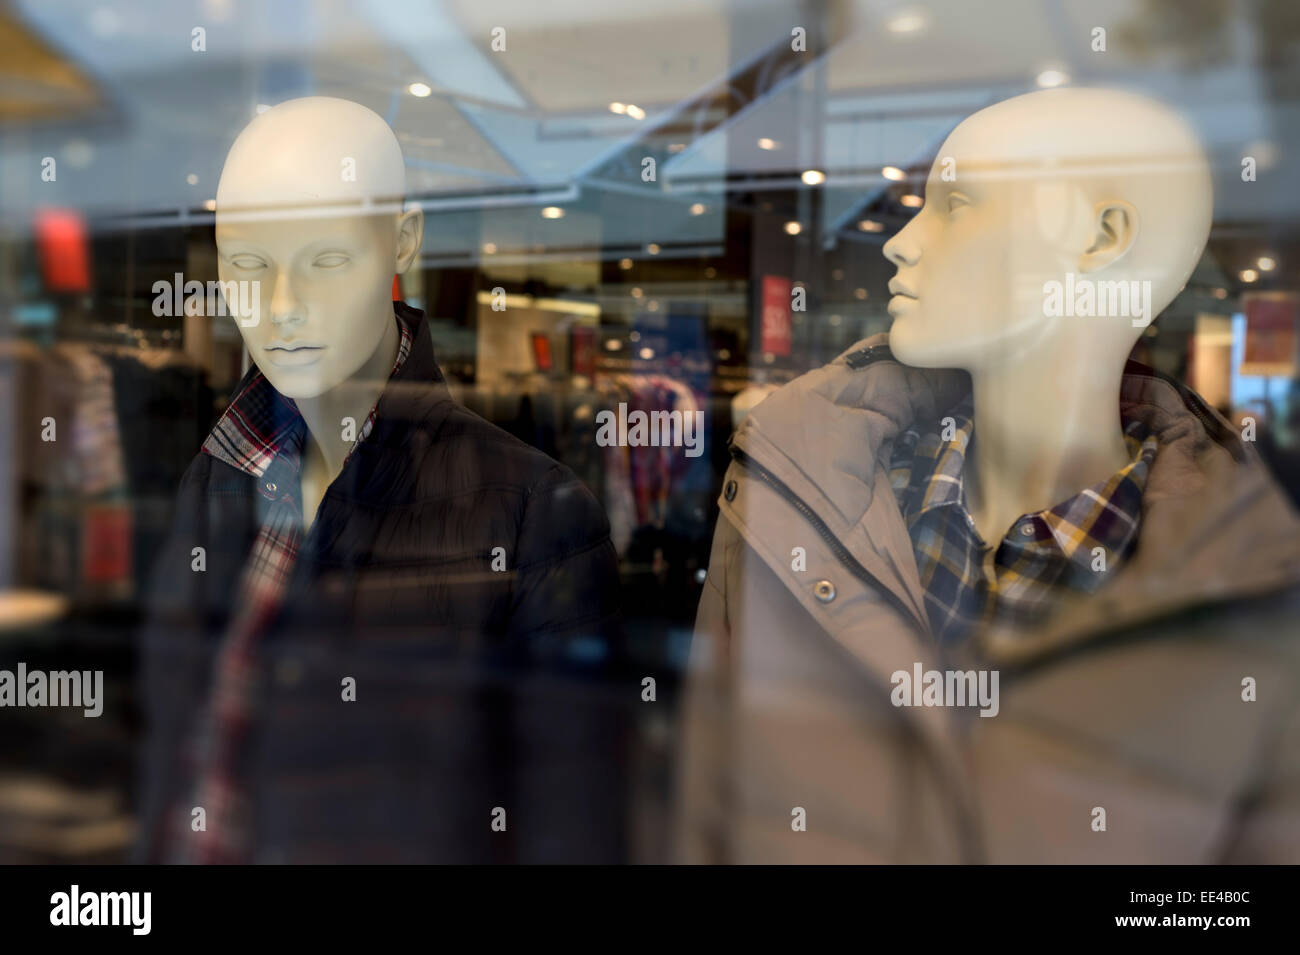 two male mannequins in shop window in Portugal - Stock Image